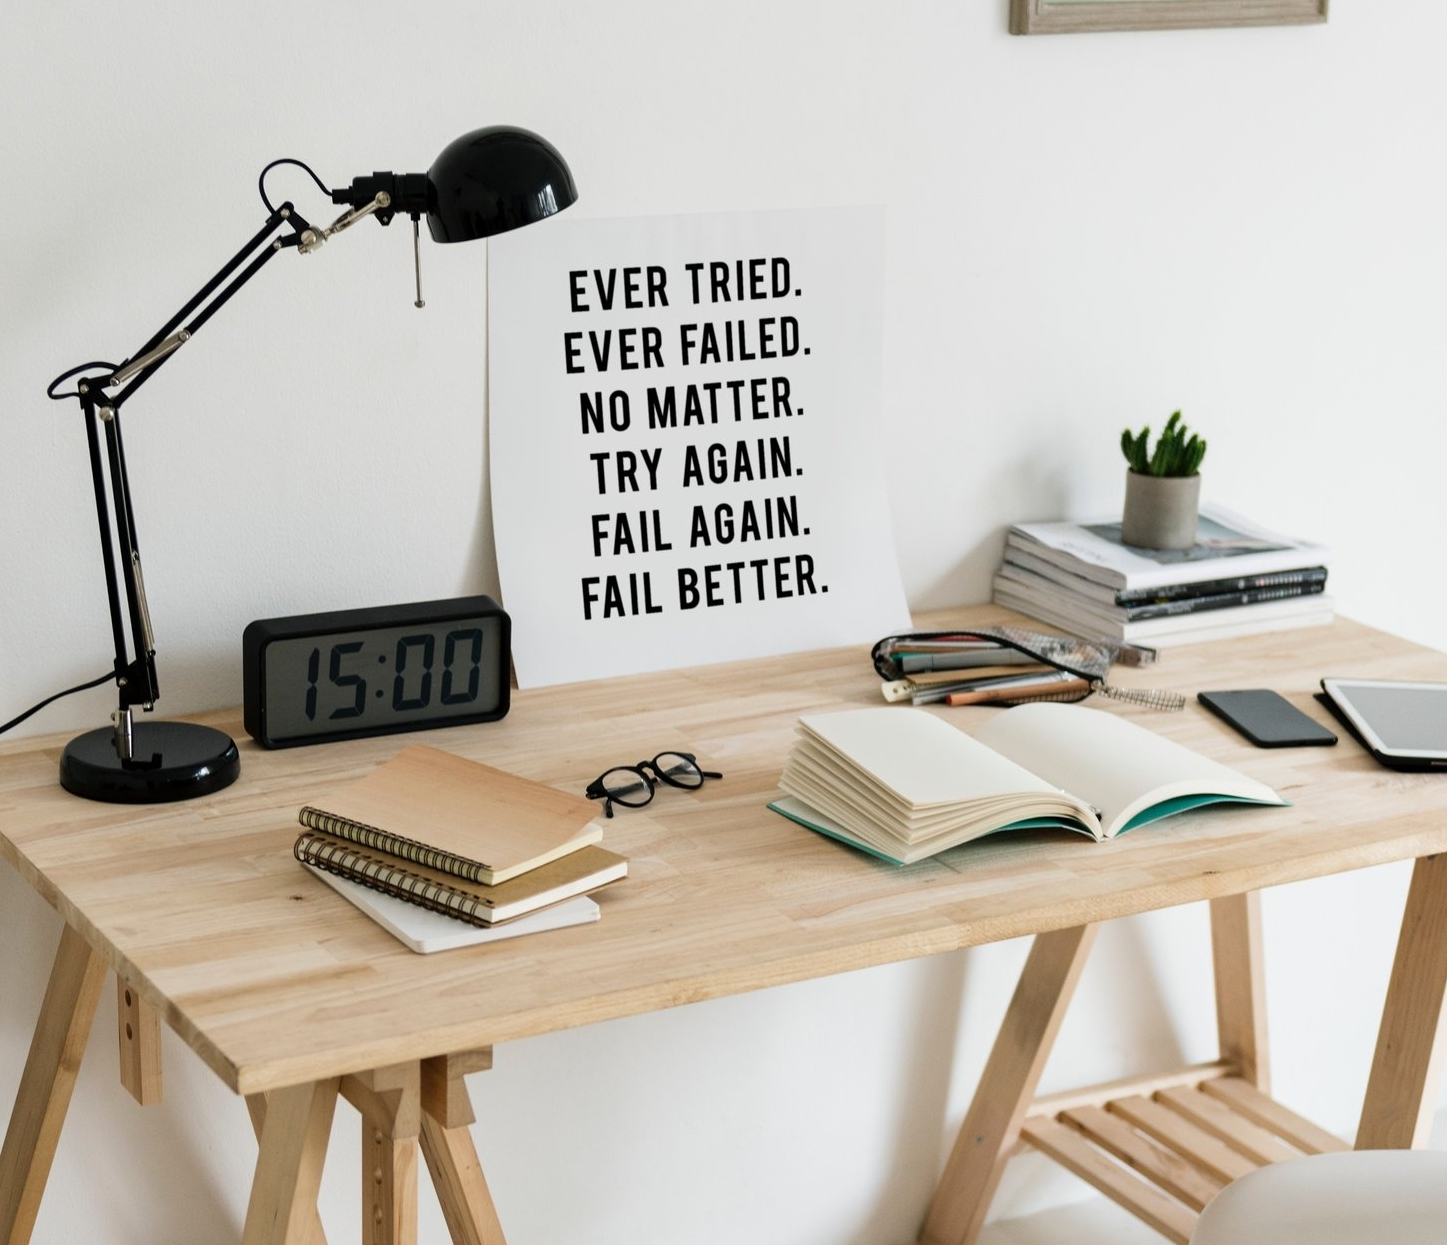 books-chair-clock-707196.jpg